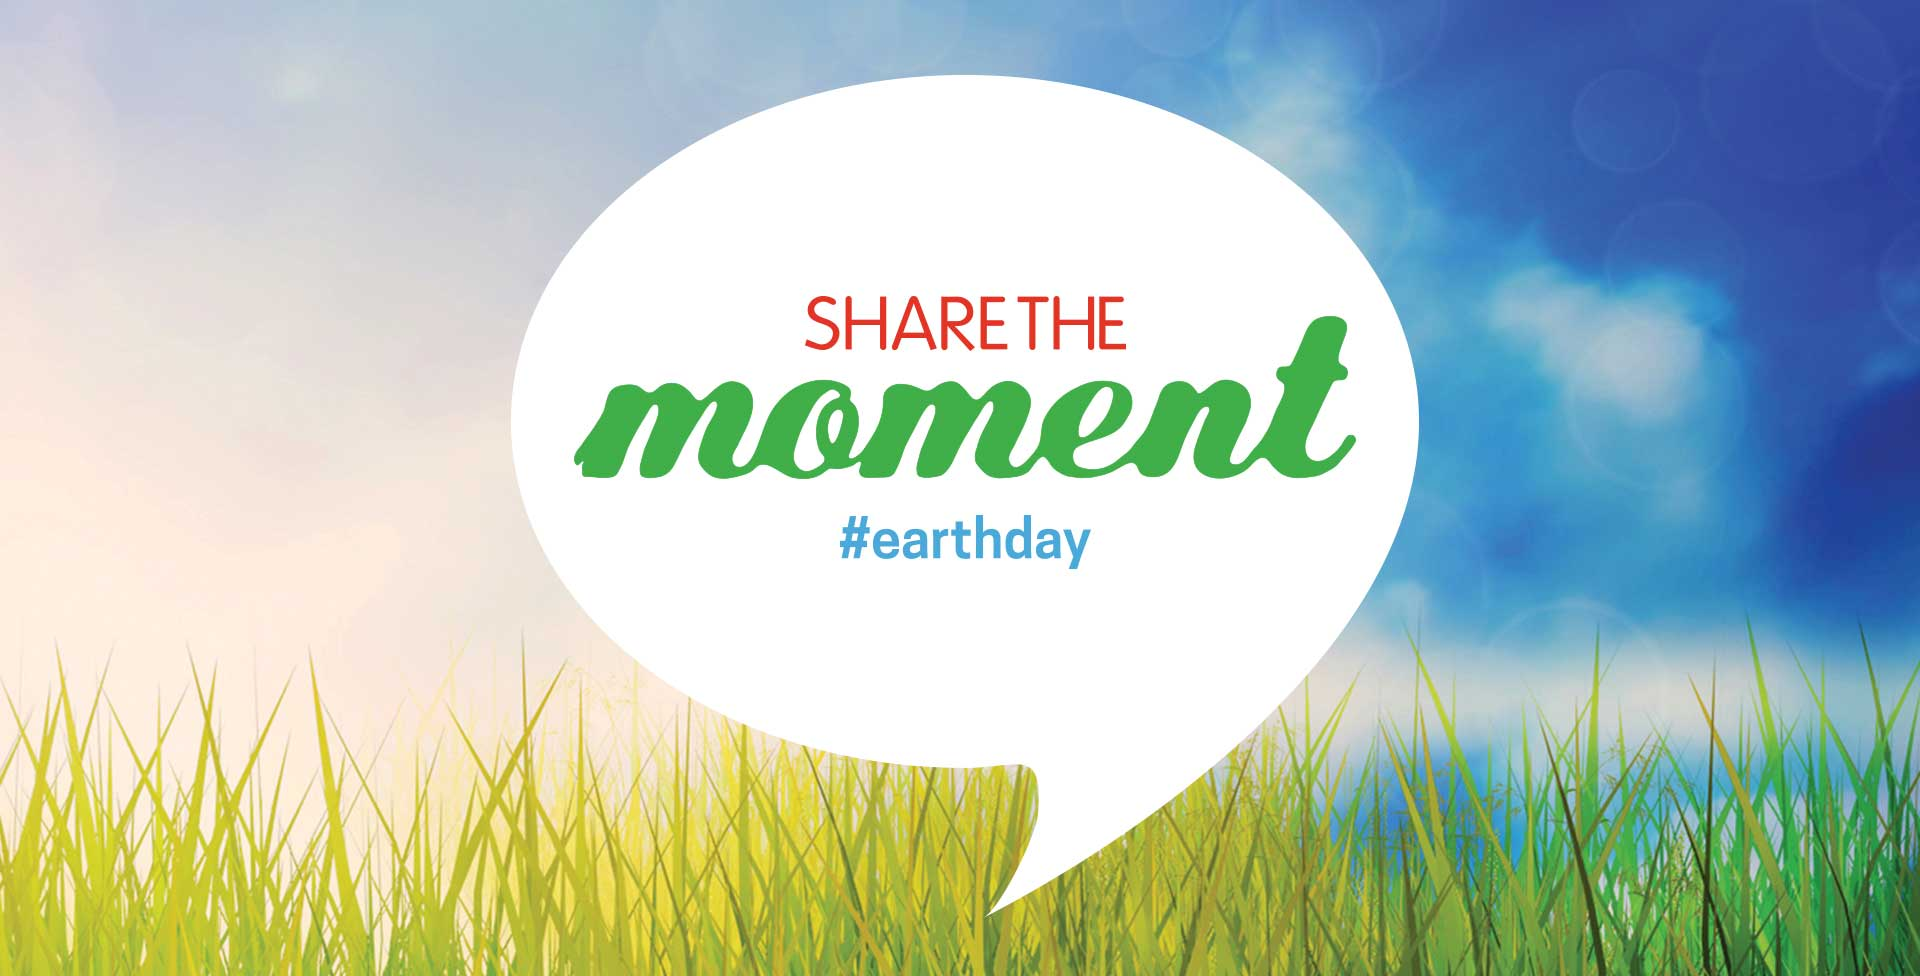 share the moment #earthday